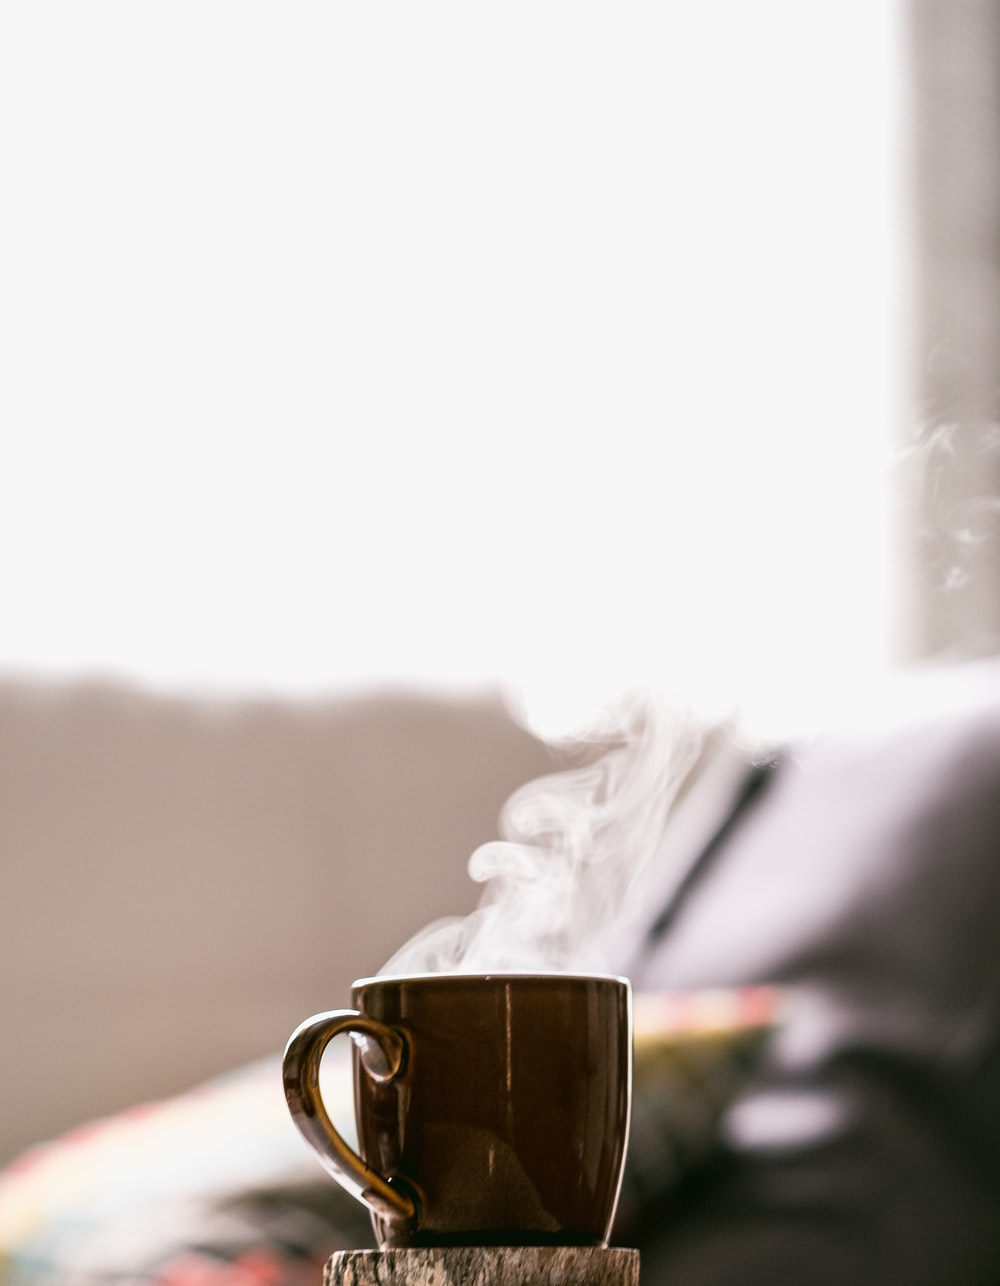 500 Good Morning Pictures Download High Definition Free Images On Unsplash